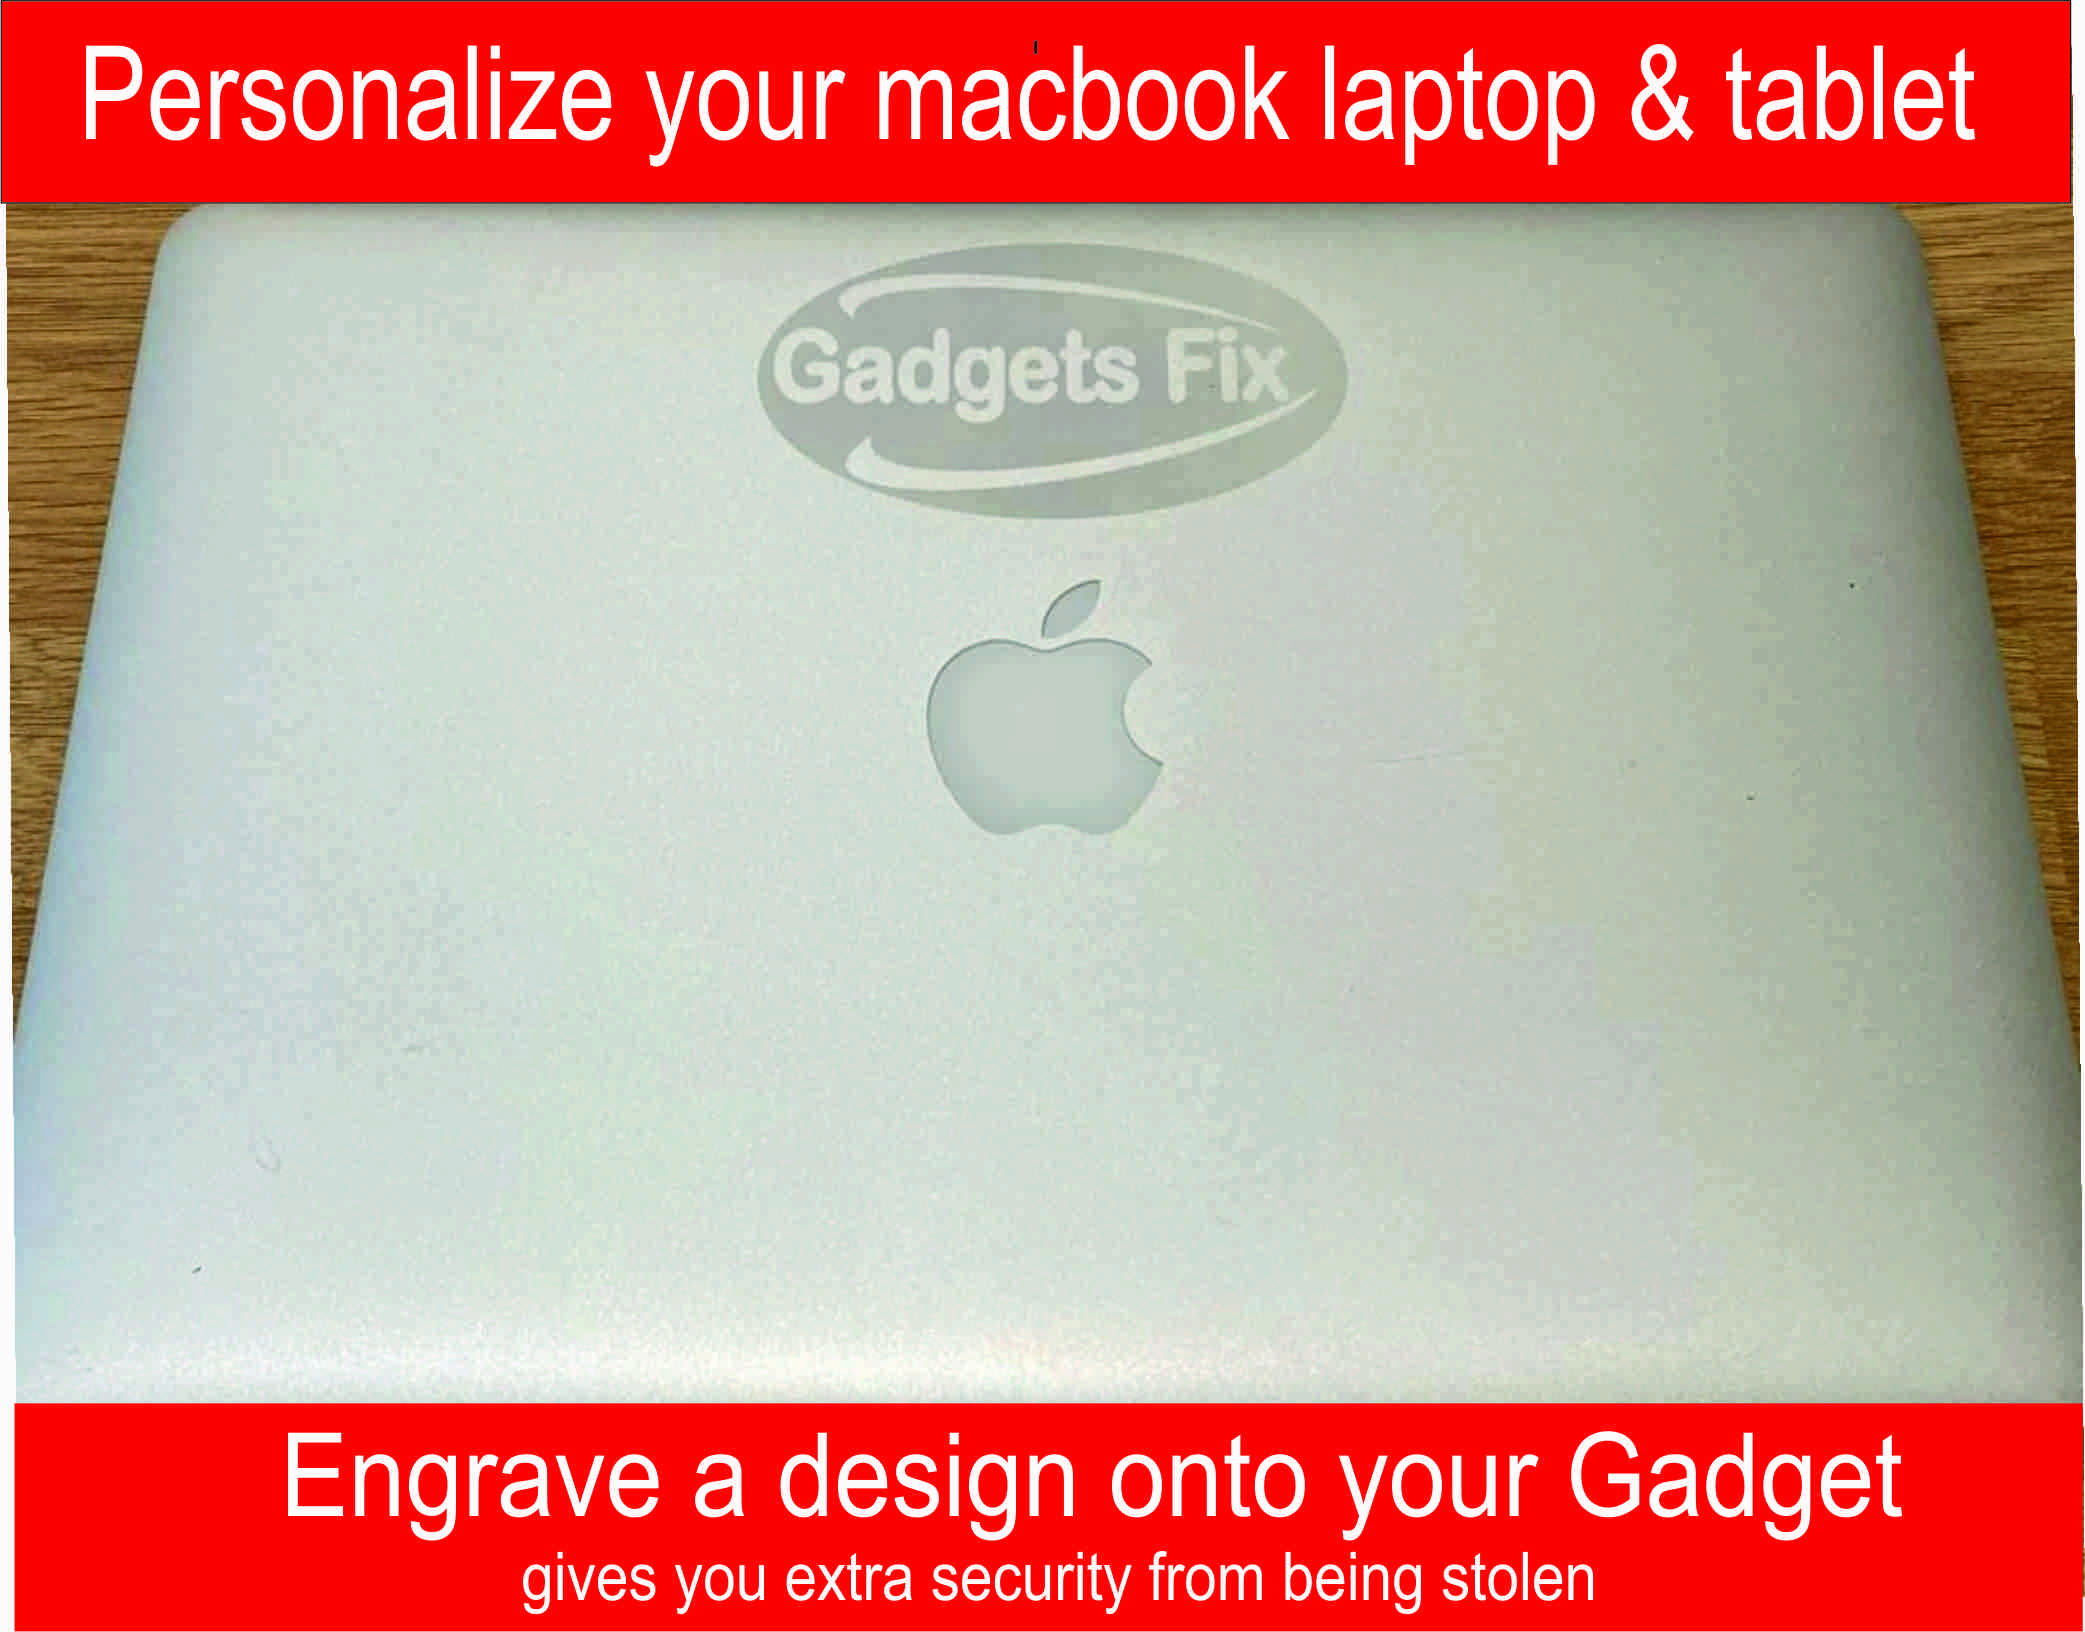 Personalise-engraved-design-on-your-laptop-macbook-and-ipad-at-gadgets-fix